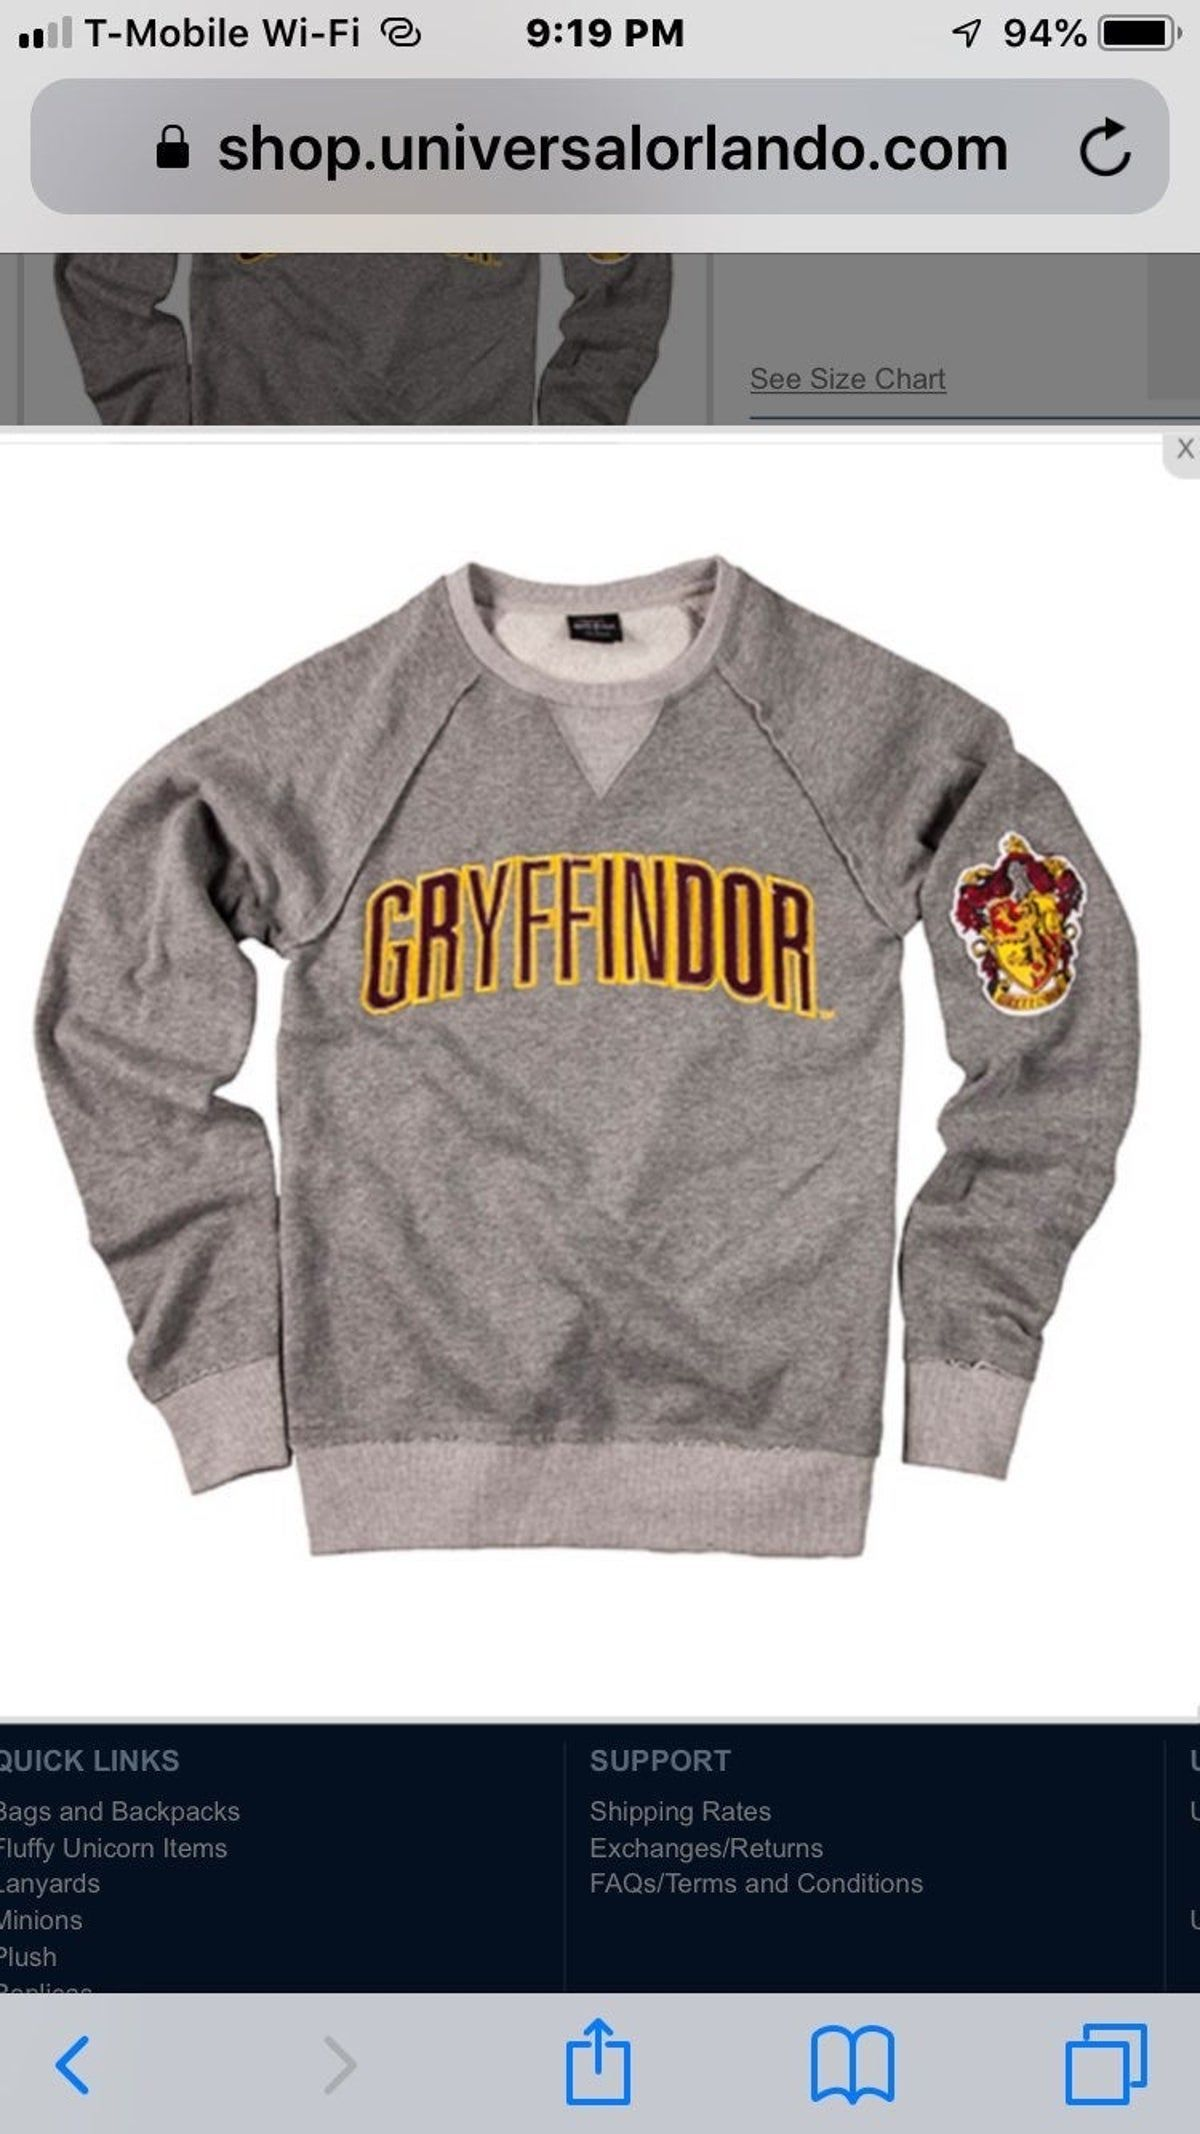 Pin By Amalia Tapia On Griffindor Weird Shirts Sweatshirts Griffindor [ 2134 x 1200 Pixel ]